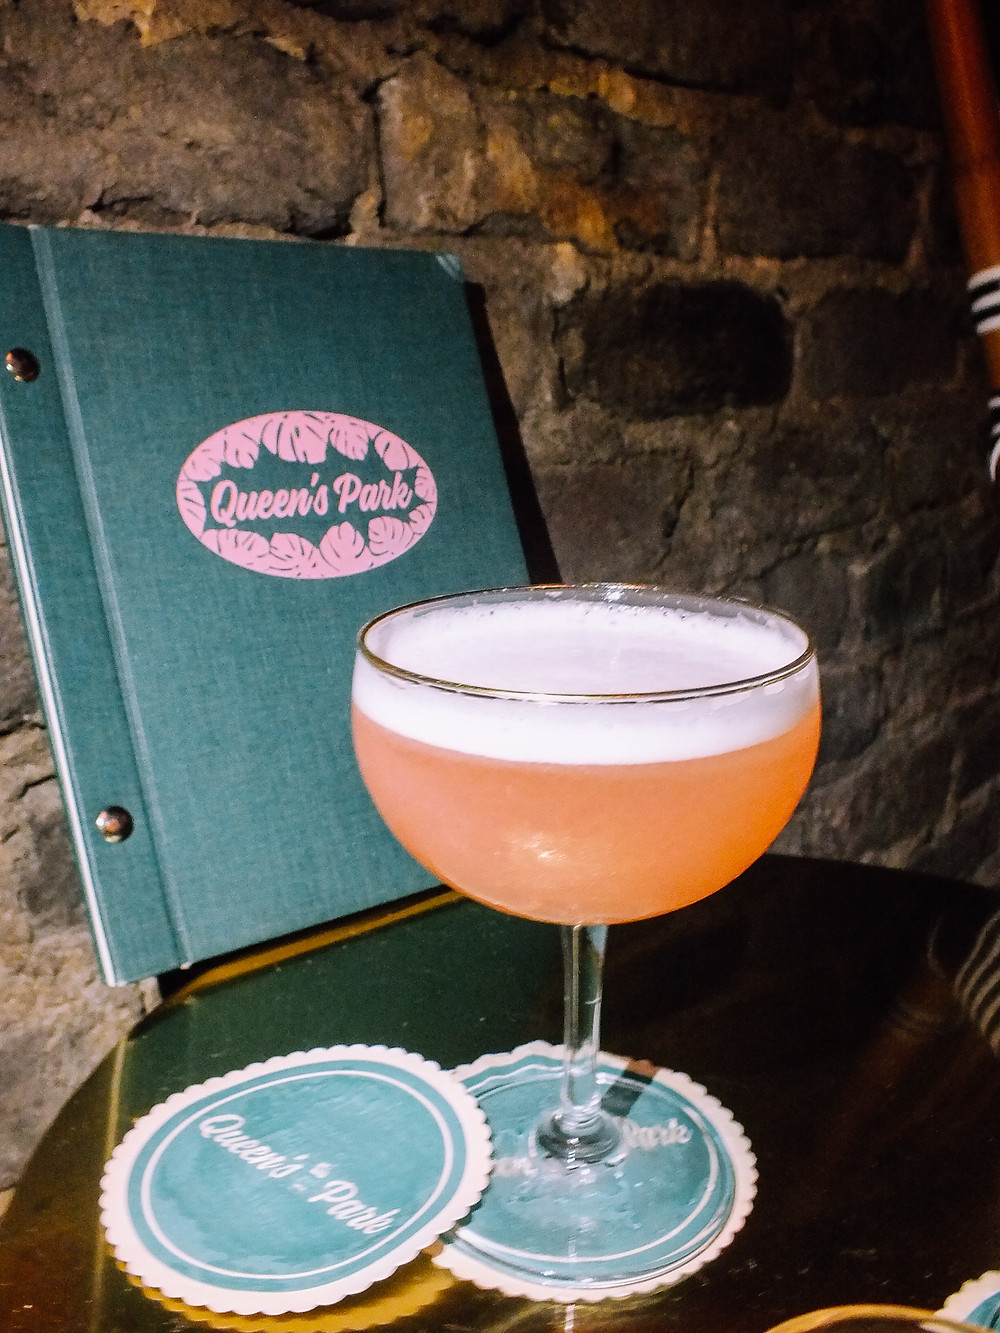 Queen's Park teal and pink menu behind a pink cocktail, called the Clover Club